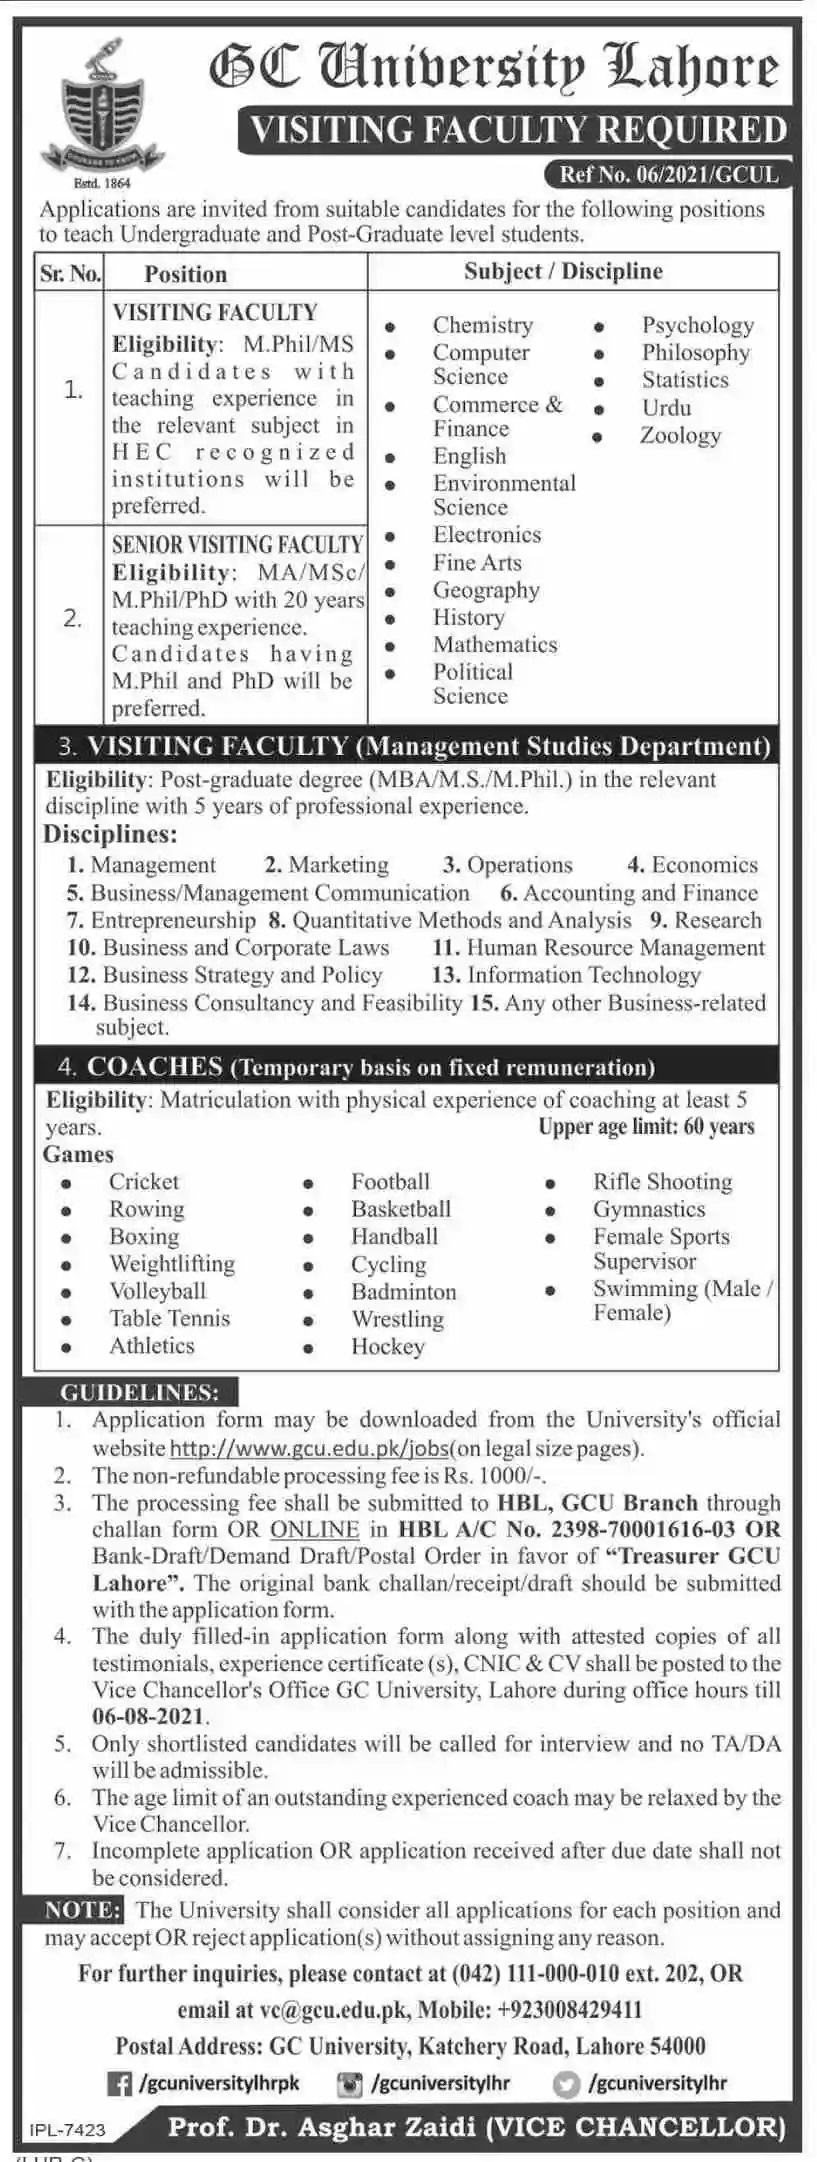 Govt jobs in Lahore 2021 Matric base Government jobs in Lahore 2021